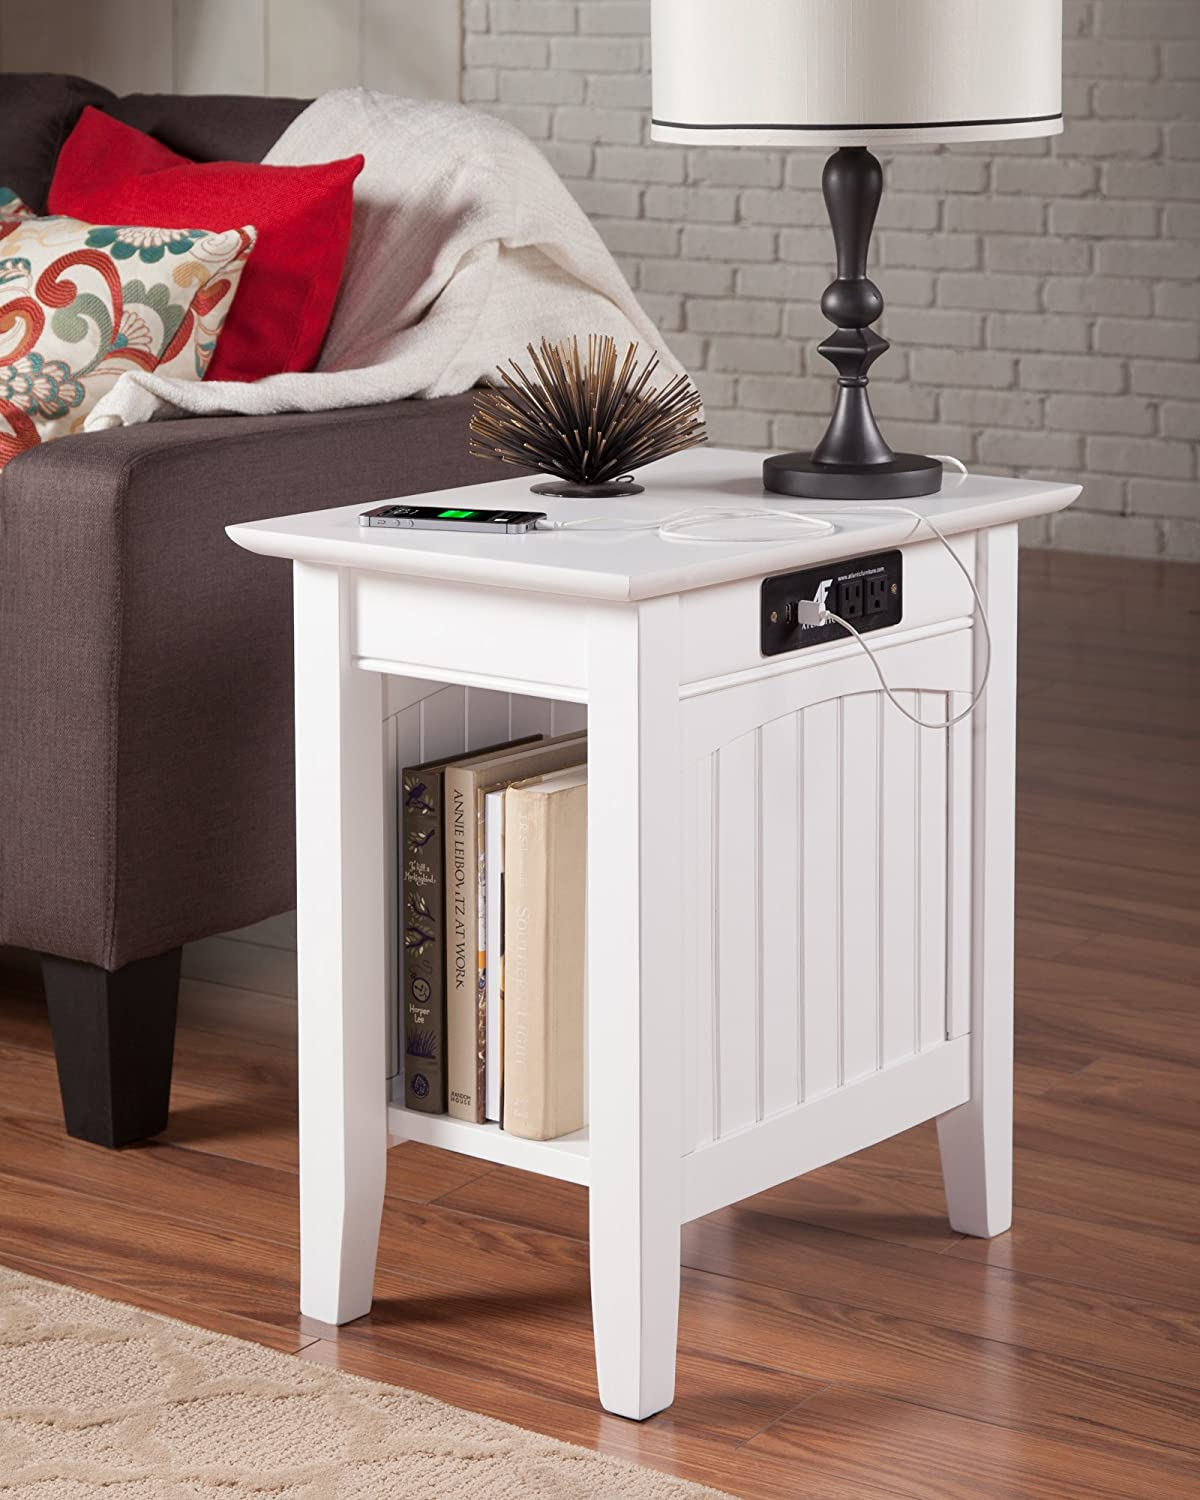 Amazon com atlantic furniture ah13312 nantucket side table rubberwood white kitchen dining